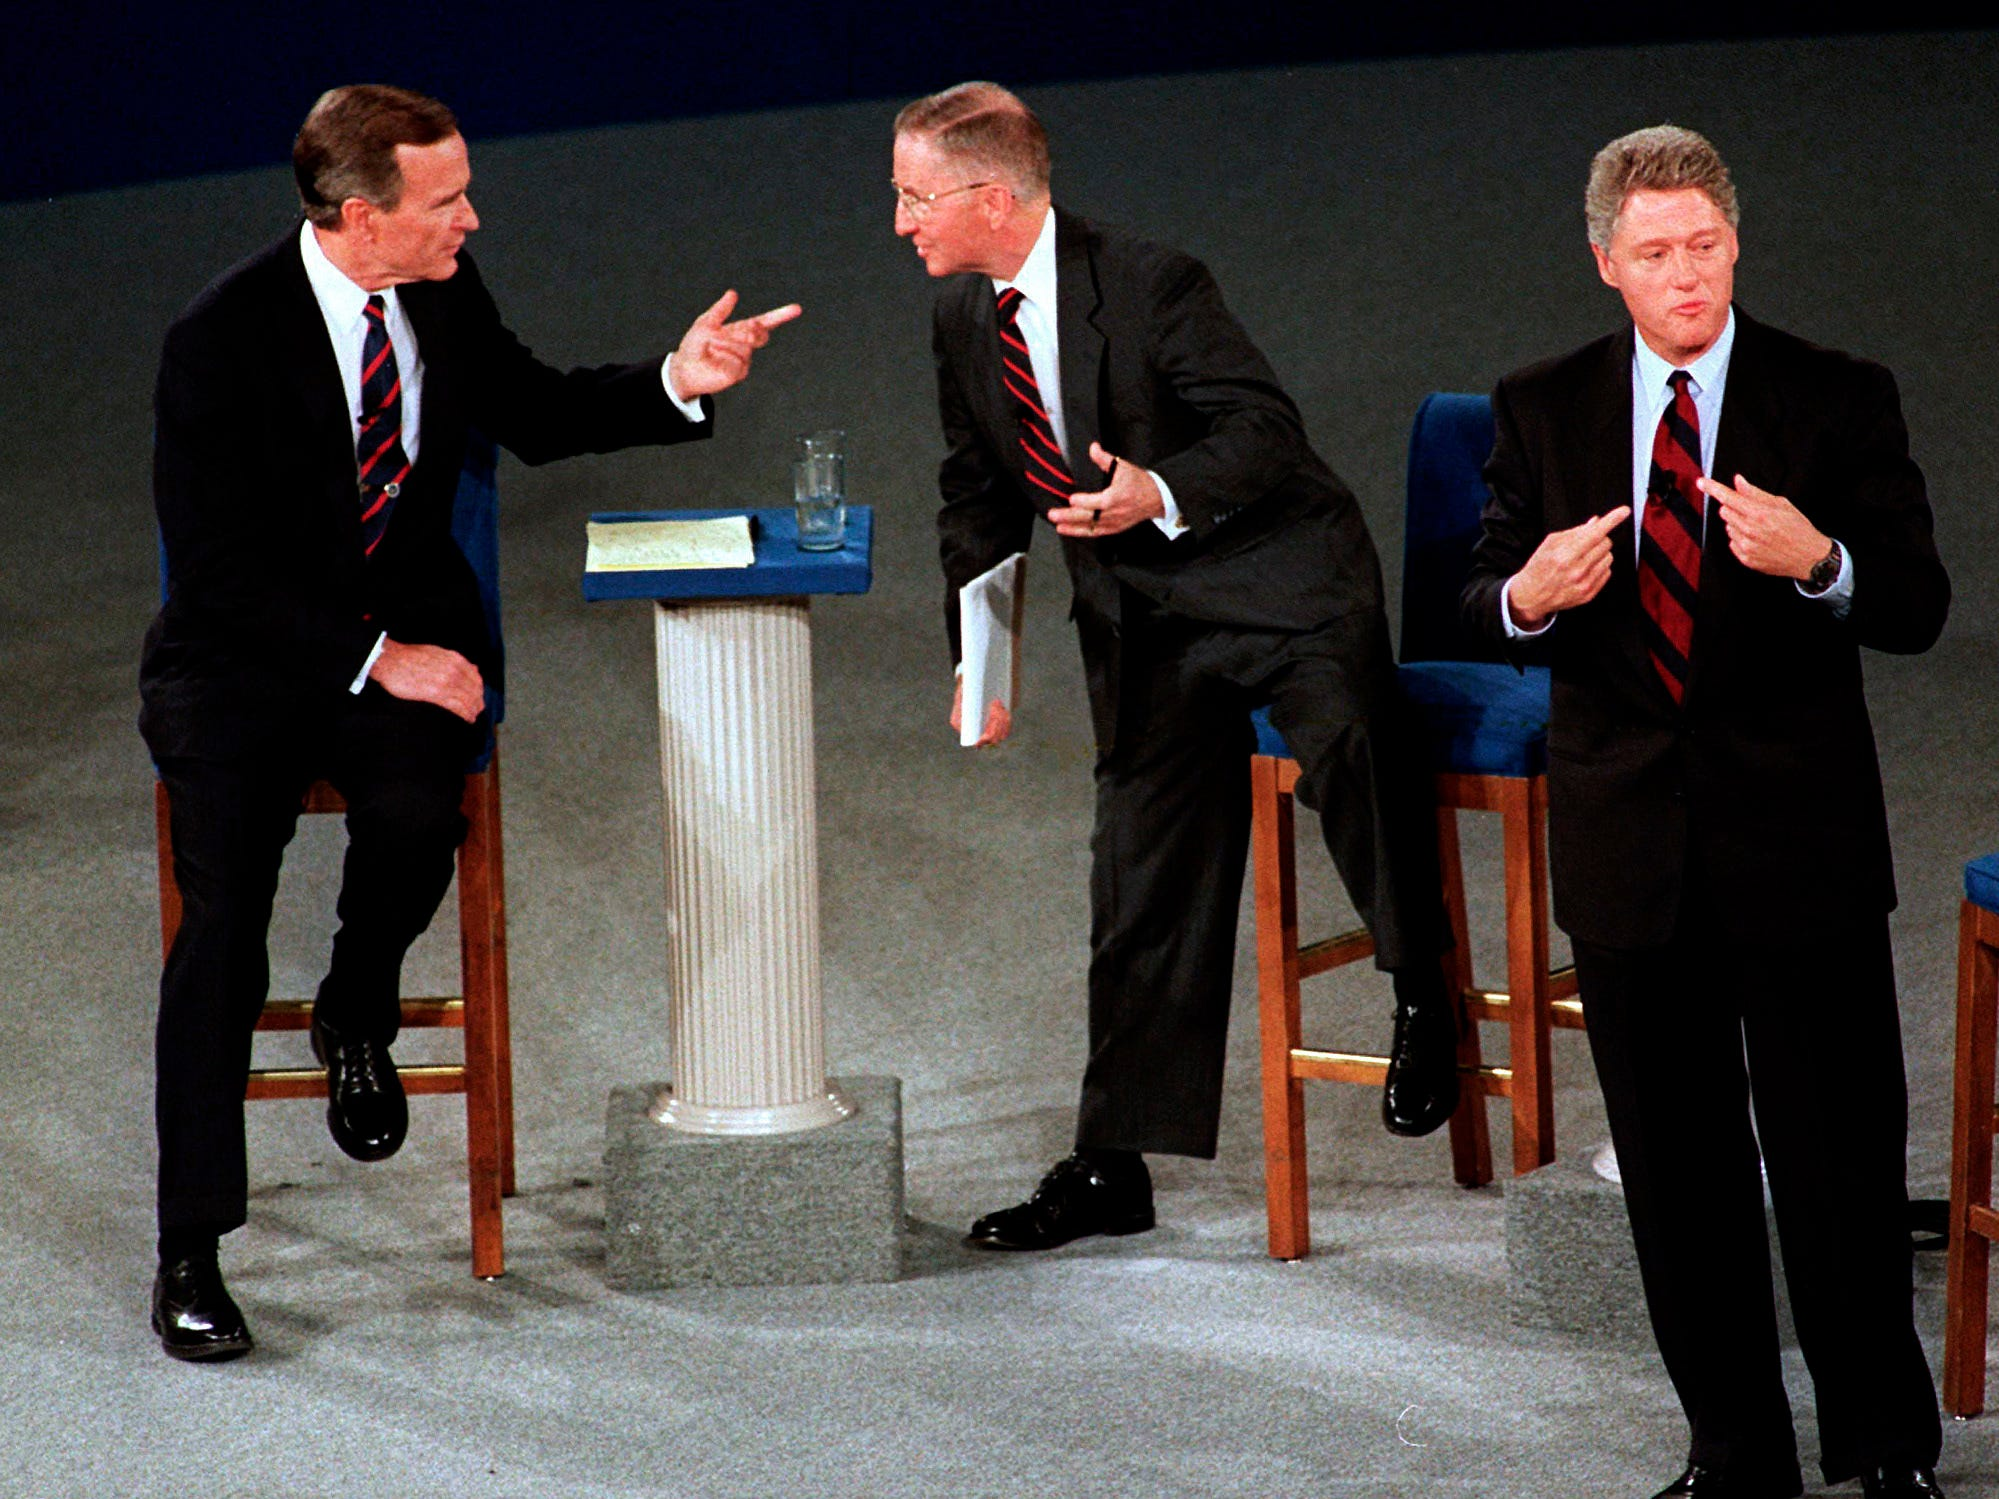 On Oct. 15, 1992, President George H.W. Bush, left, talks with independent candidate Ross Perot as Democratic candidate Bill Clinton stands aside at the end of their second presidential debate in Richmond, Va.